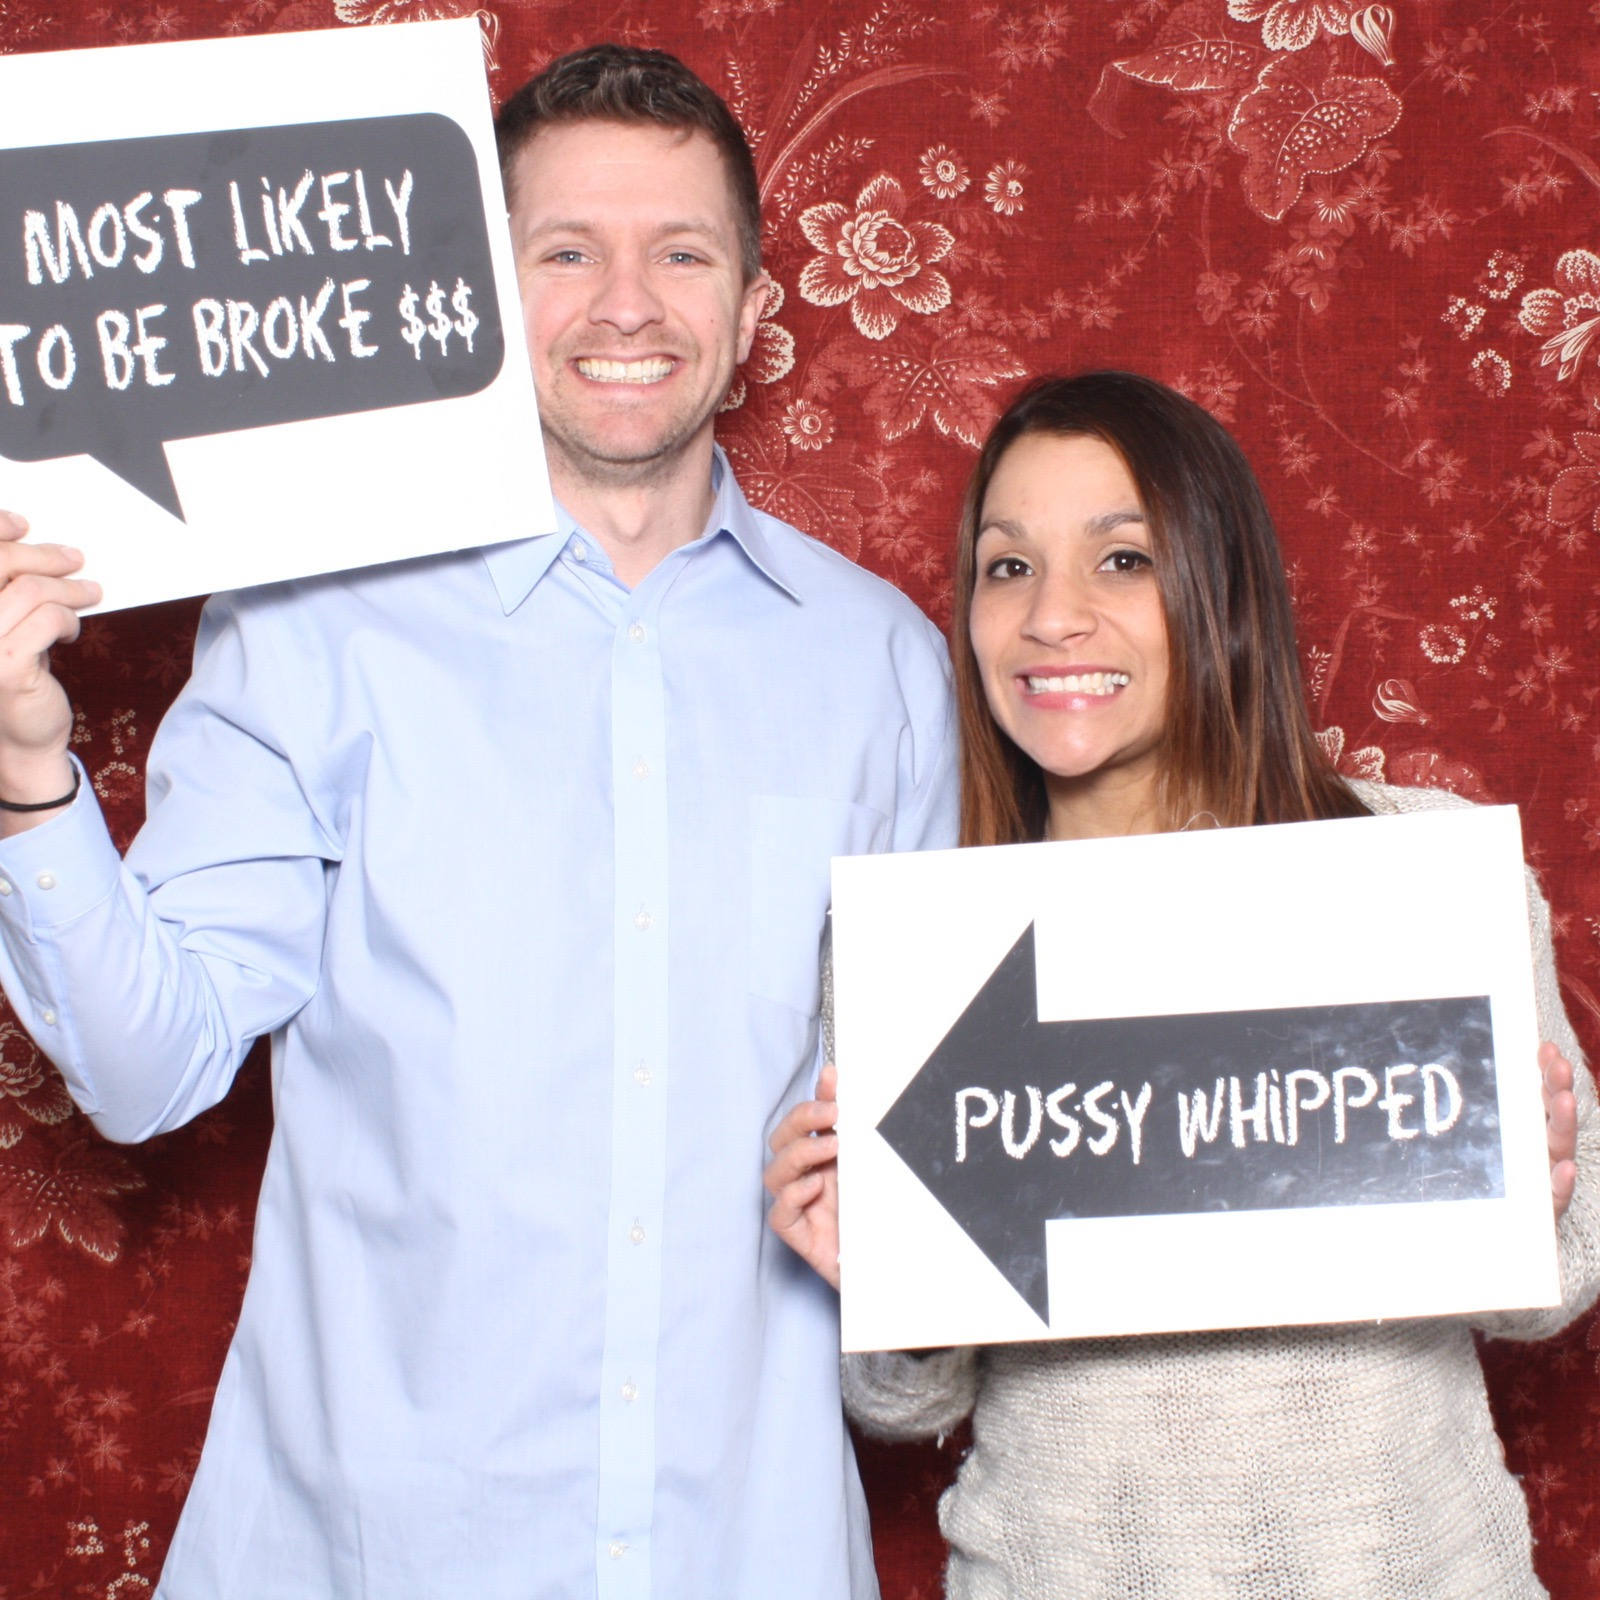 WeLovePhotobooths_6_1025752_1073703.jpg